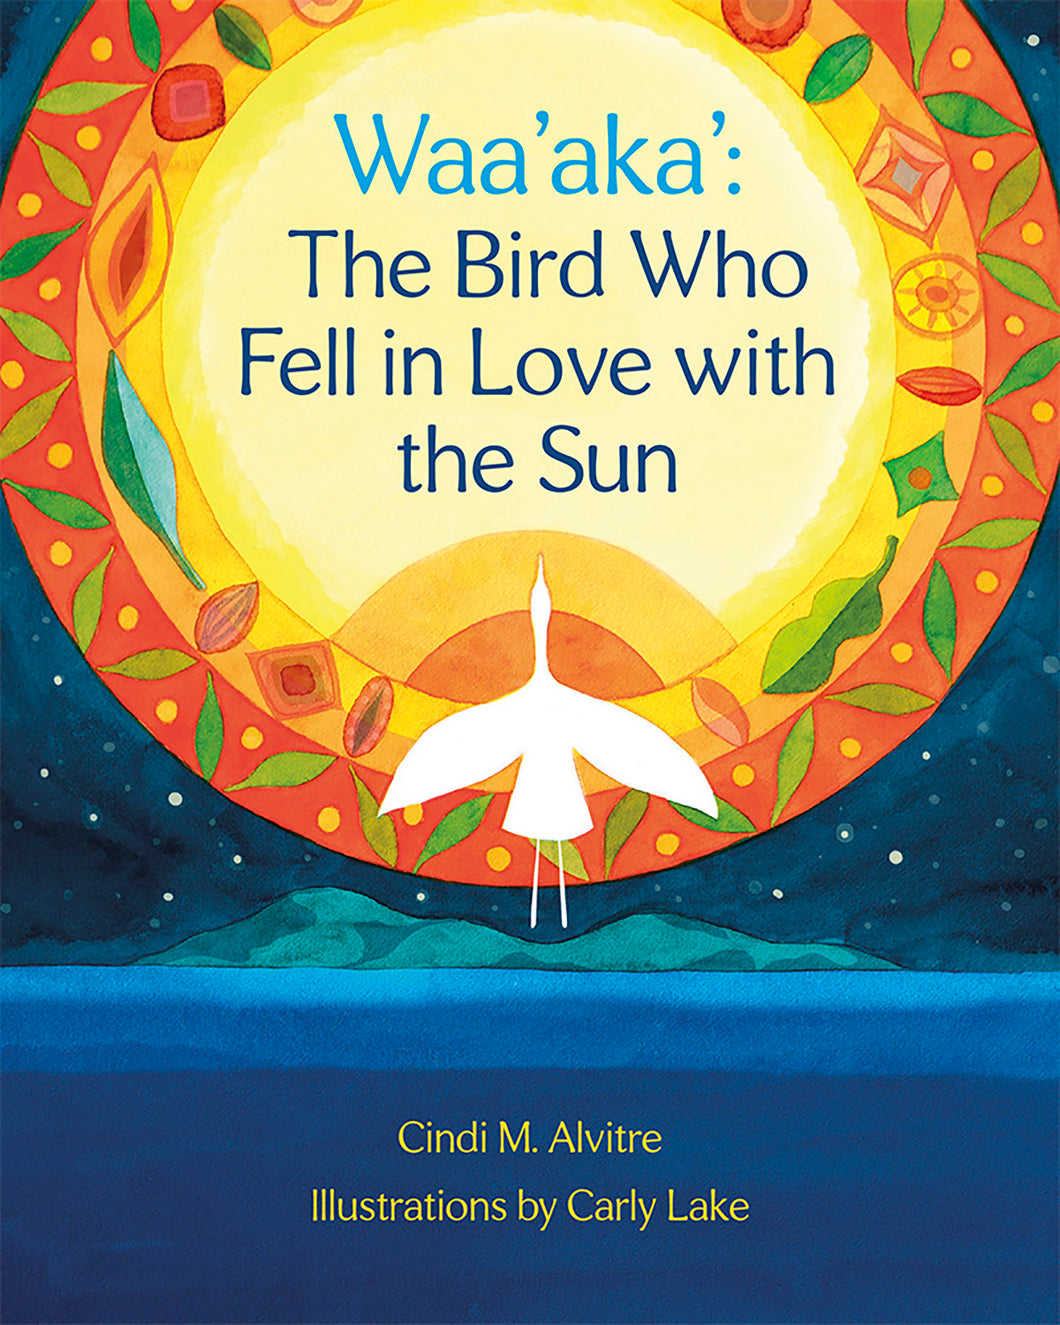 Waa'aka': The Bird Who Fell in Love with the Sun